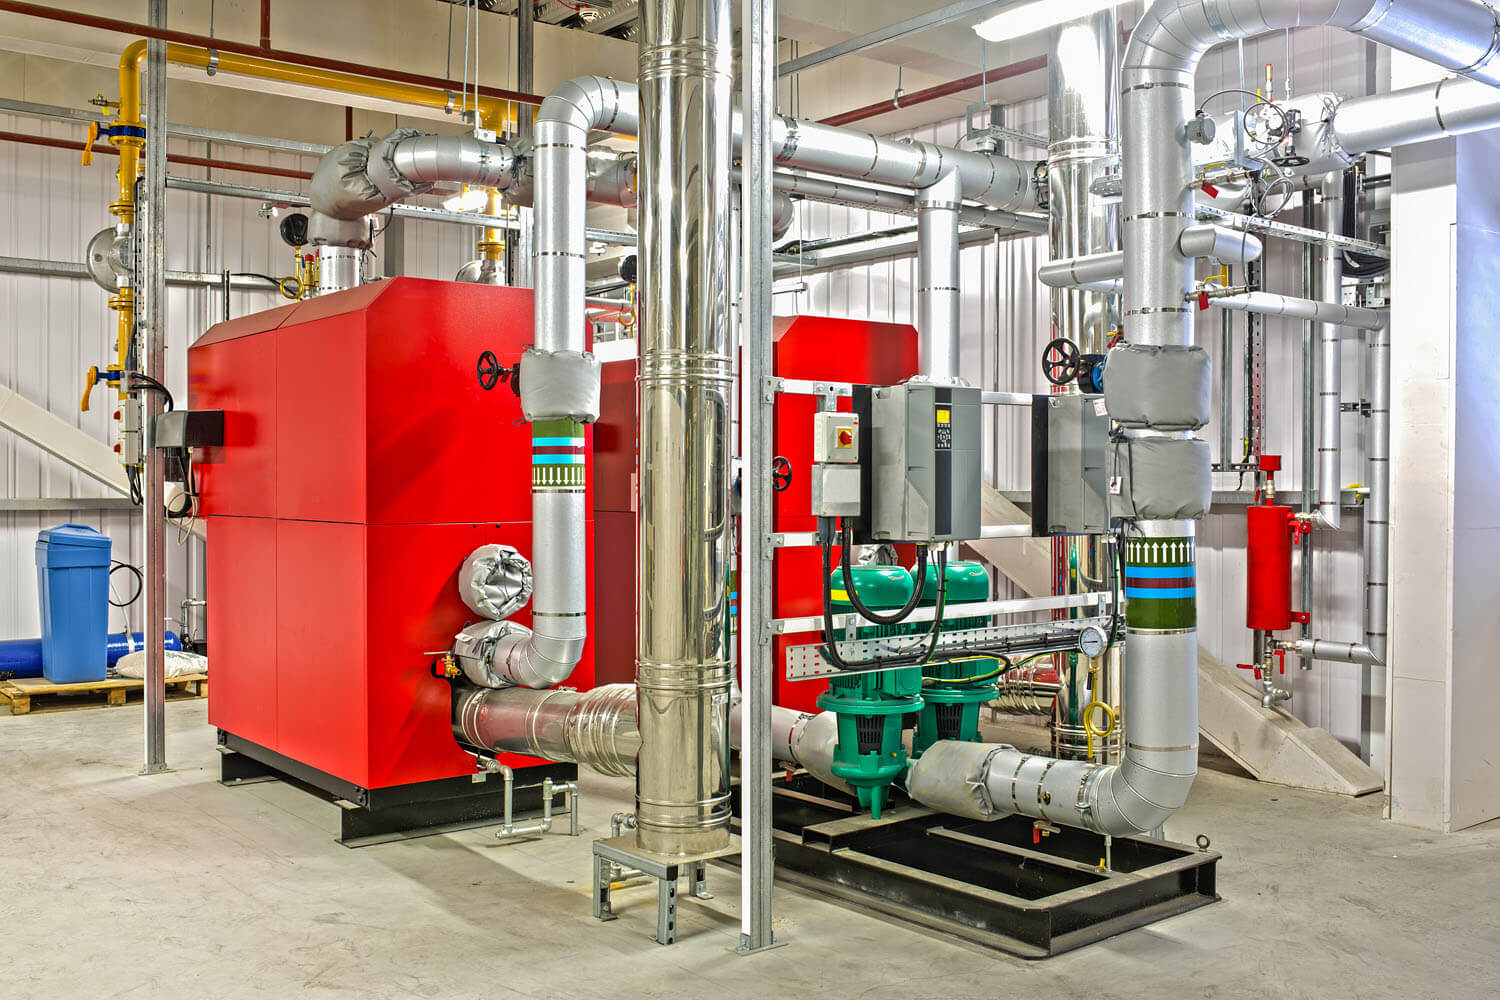 Commercial Boiler Servicing